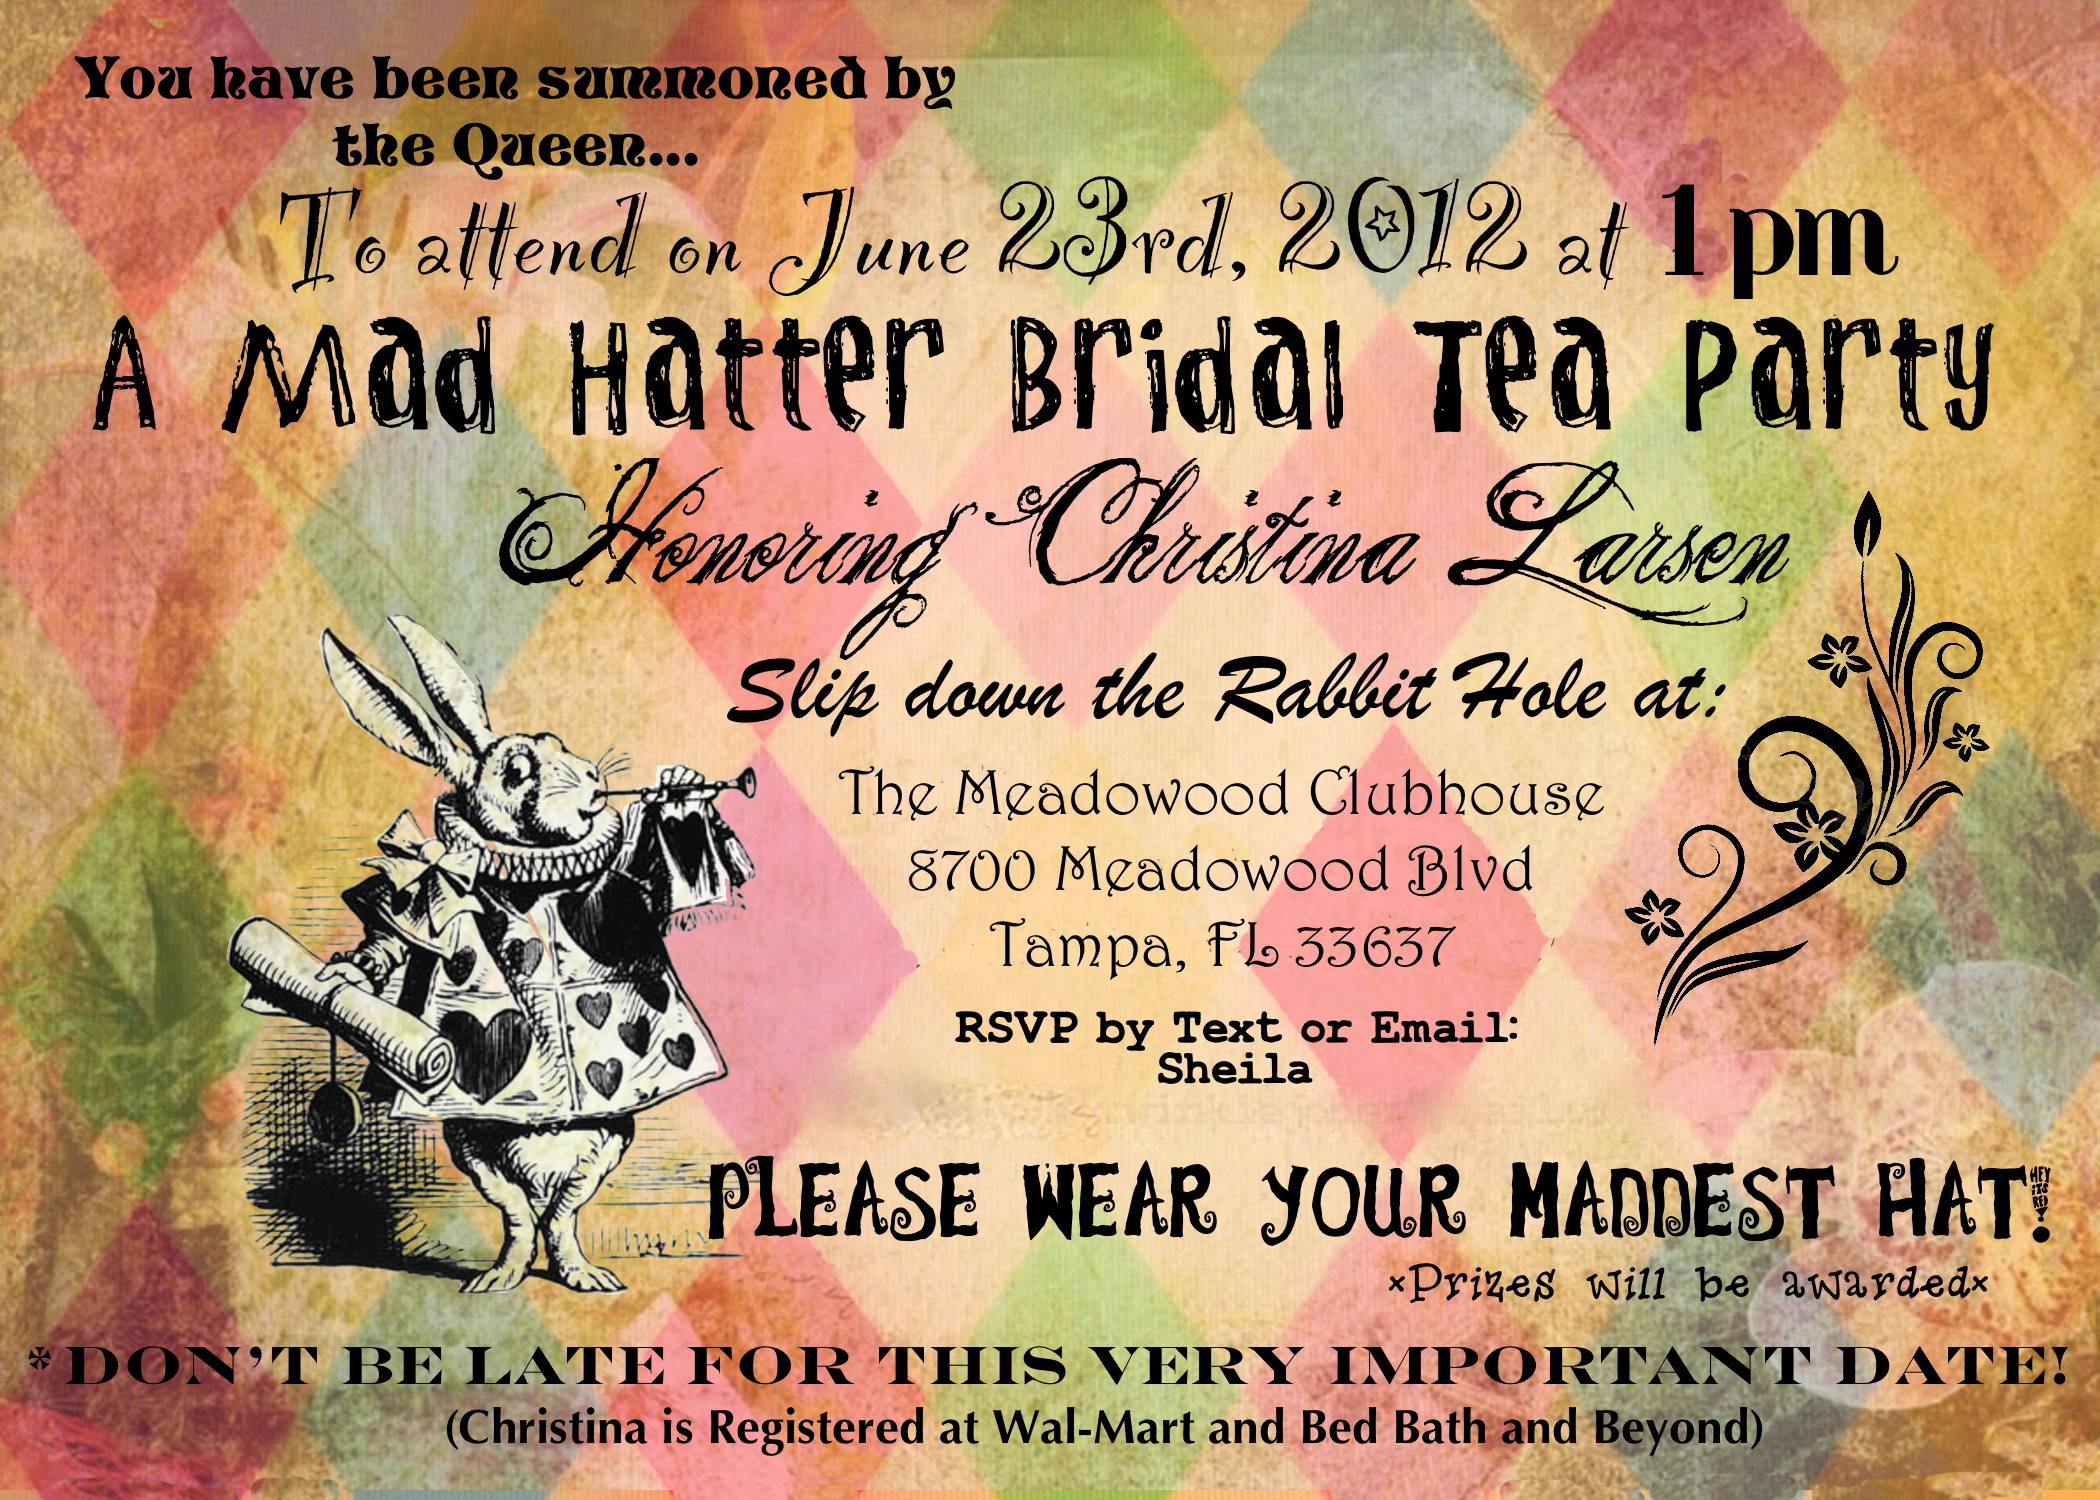 Mad Hatter Tea Party Invitations Mad Hatter Tea Party Invitations - Mad Hatter Tea Party Invitations Free Printable